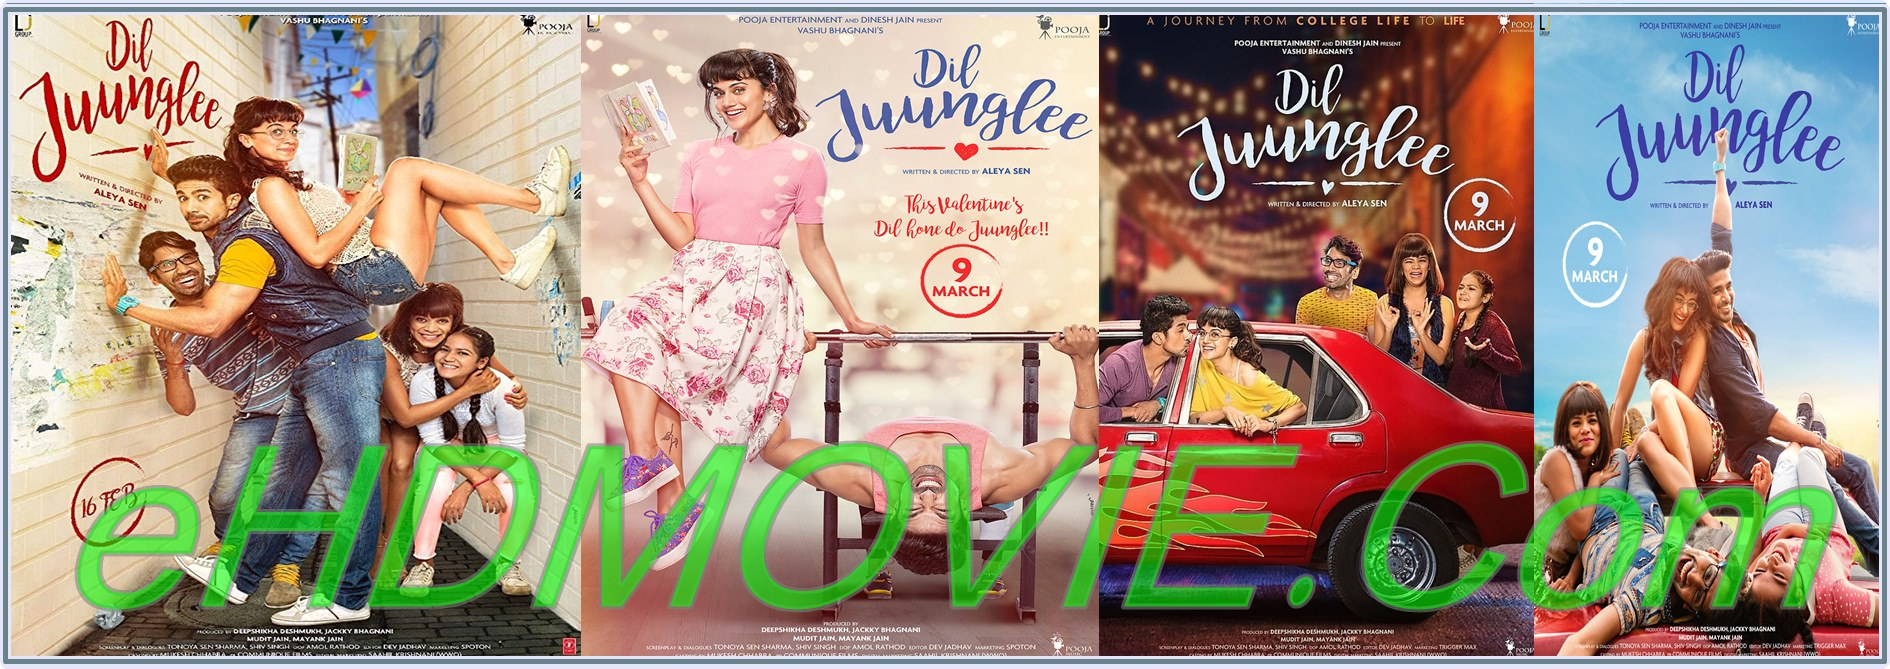 Dil Juunglee 2018 Full Movie Hindi 1080p - 720p - HEVC - 480p ORG WEB-DL 350MB - 550MB - 900MB - 3GB ESubs Free Download